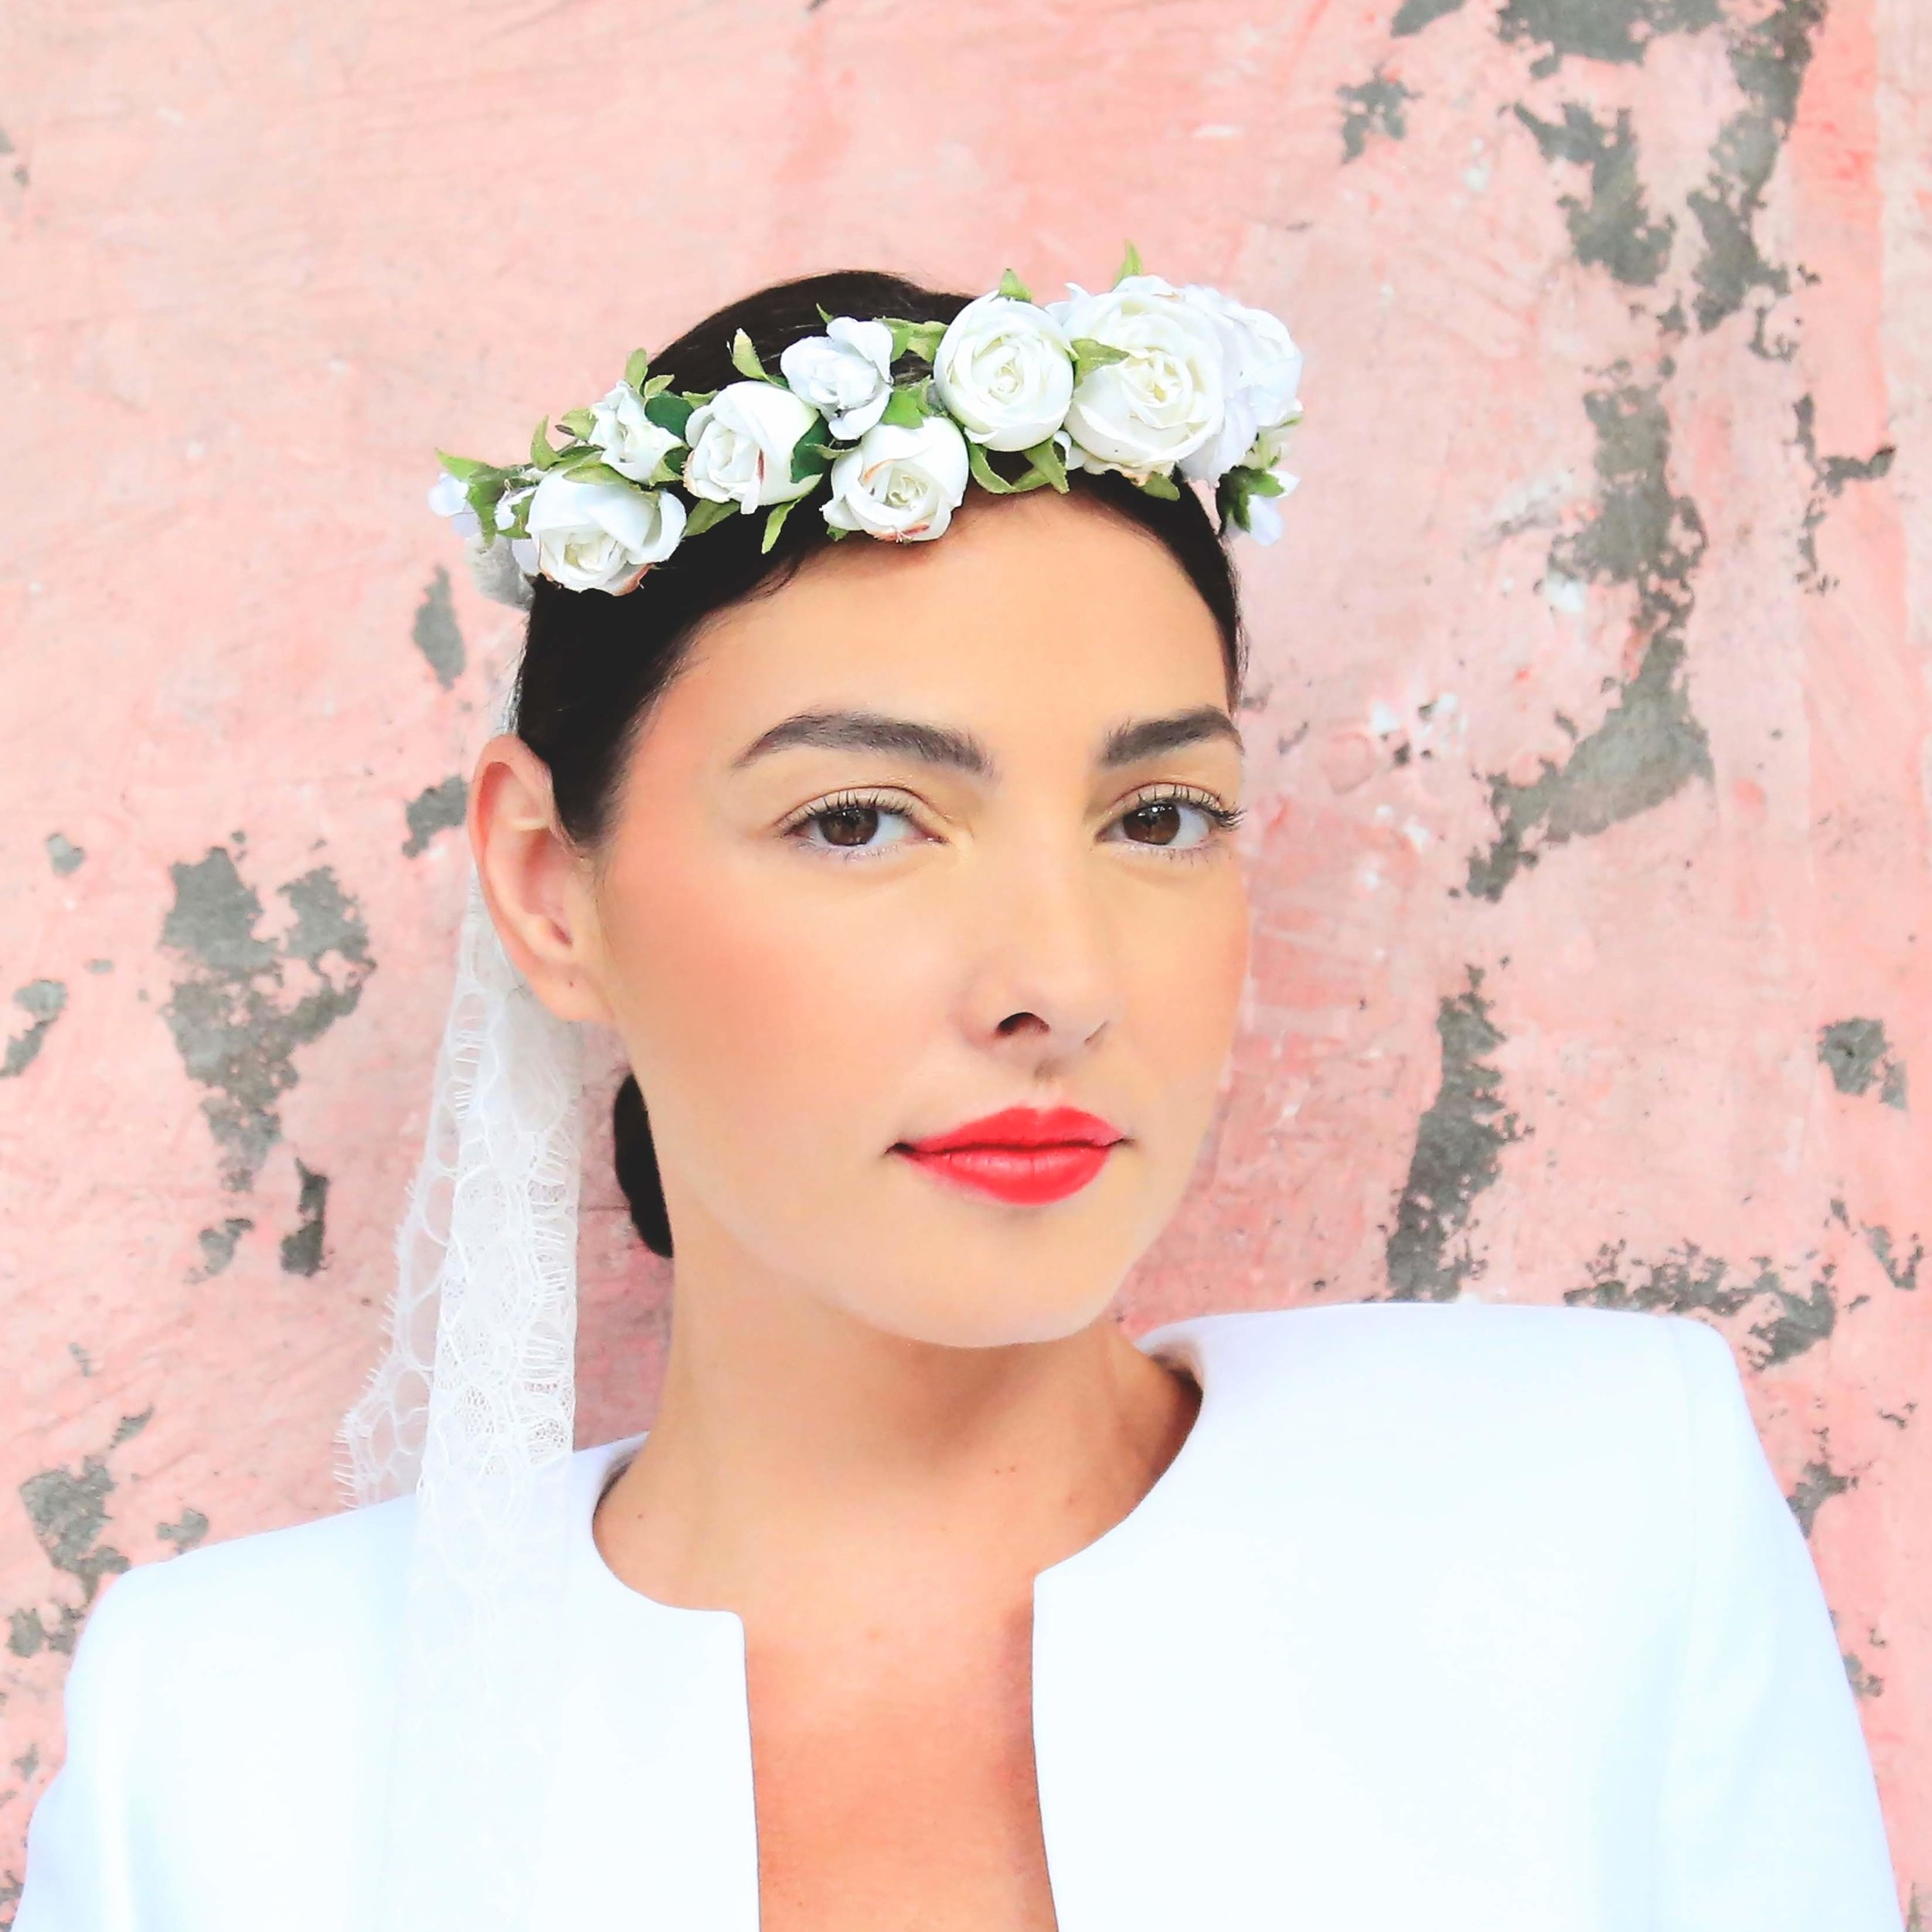 AVIGNON flower crown with lace ties